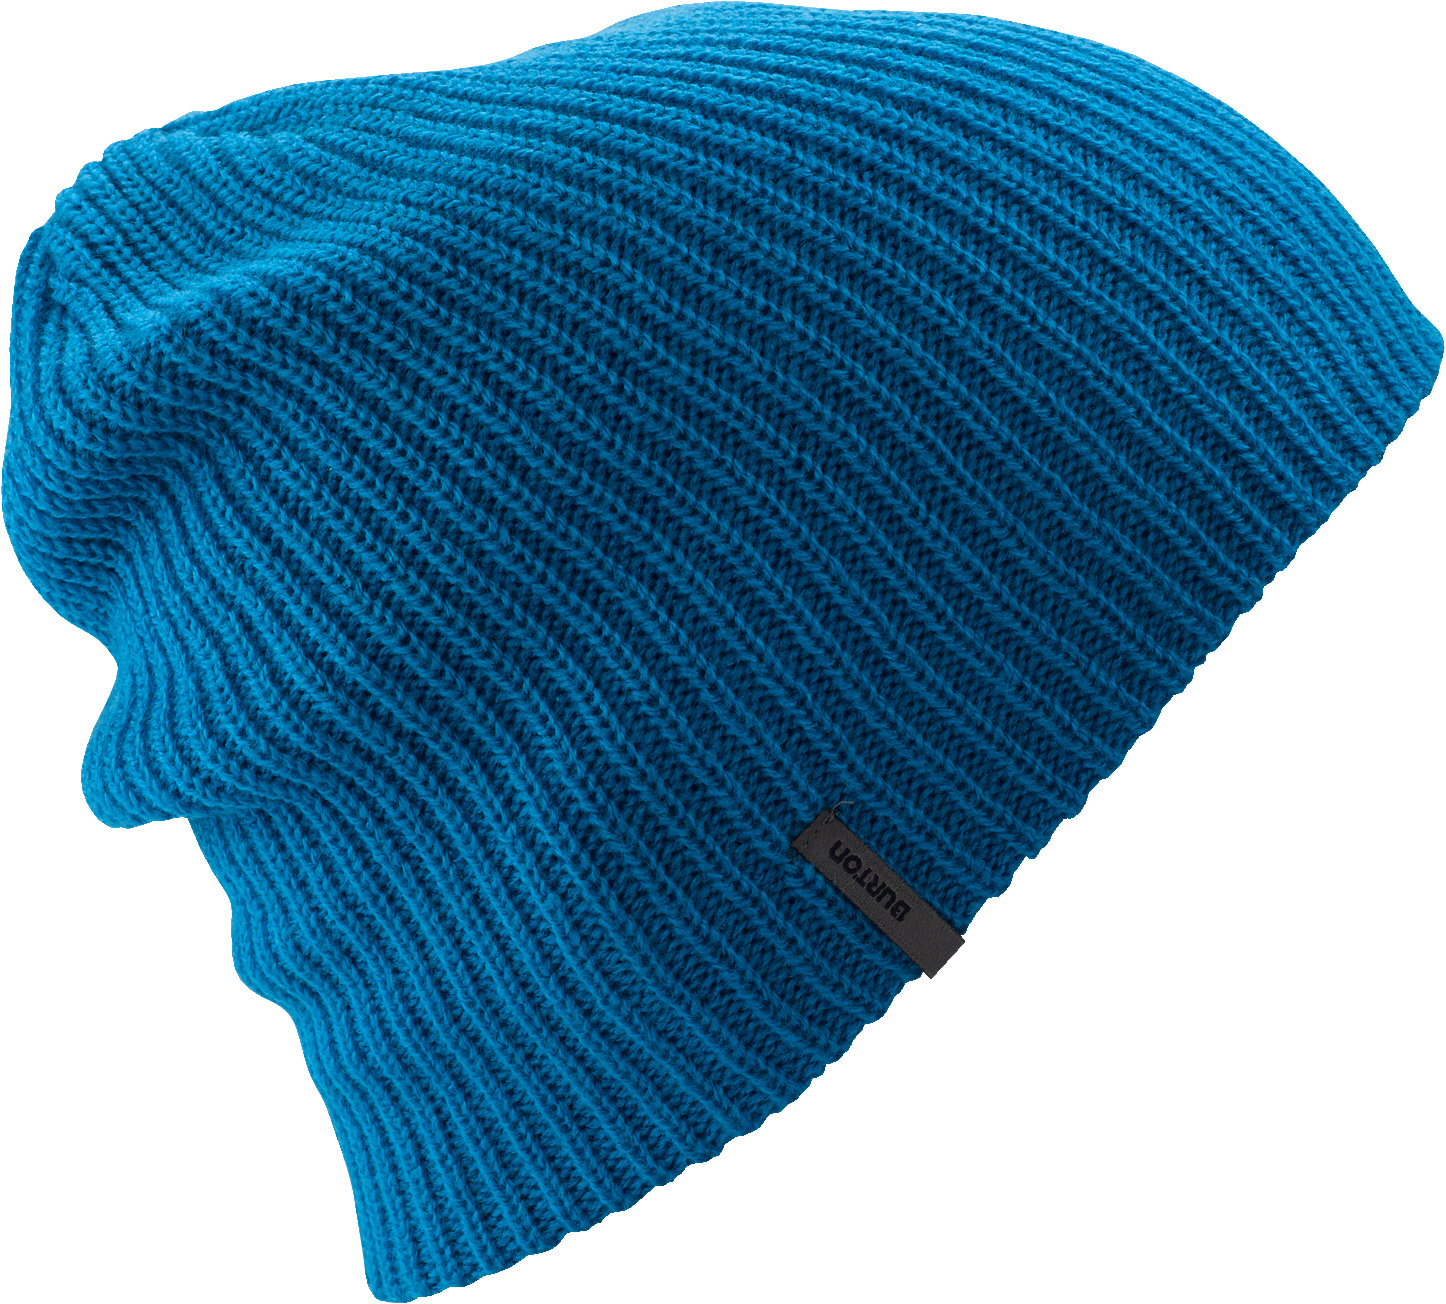 Snowboard Key Features of the Burton All Day Long Beanie: 100% Fine Knit Acrylic Slouch Fit - $15.00